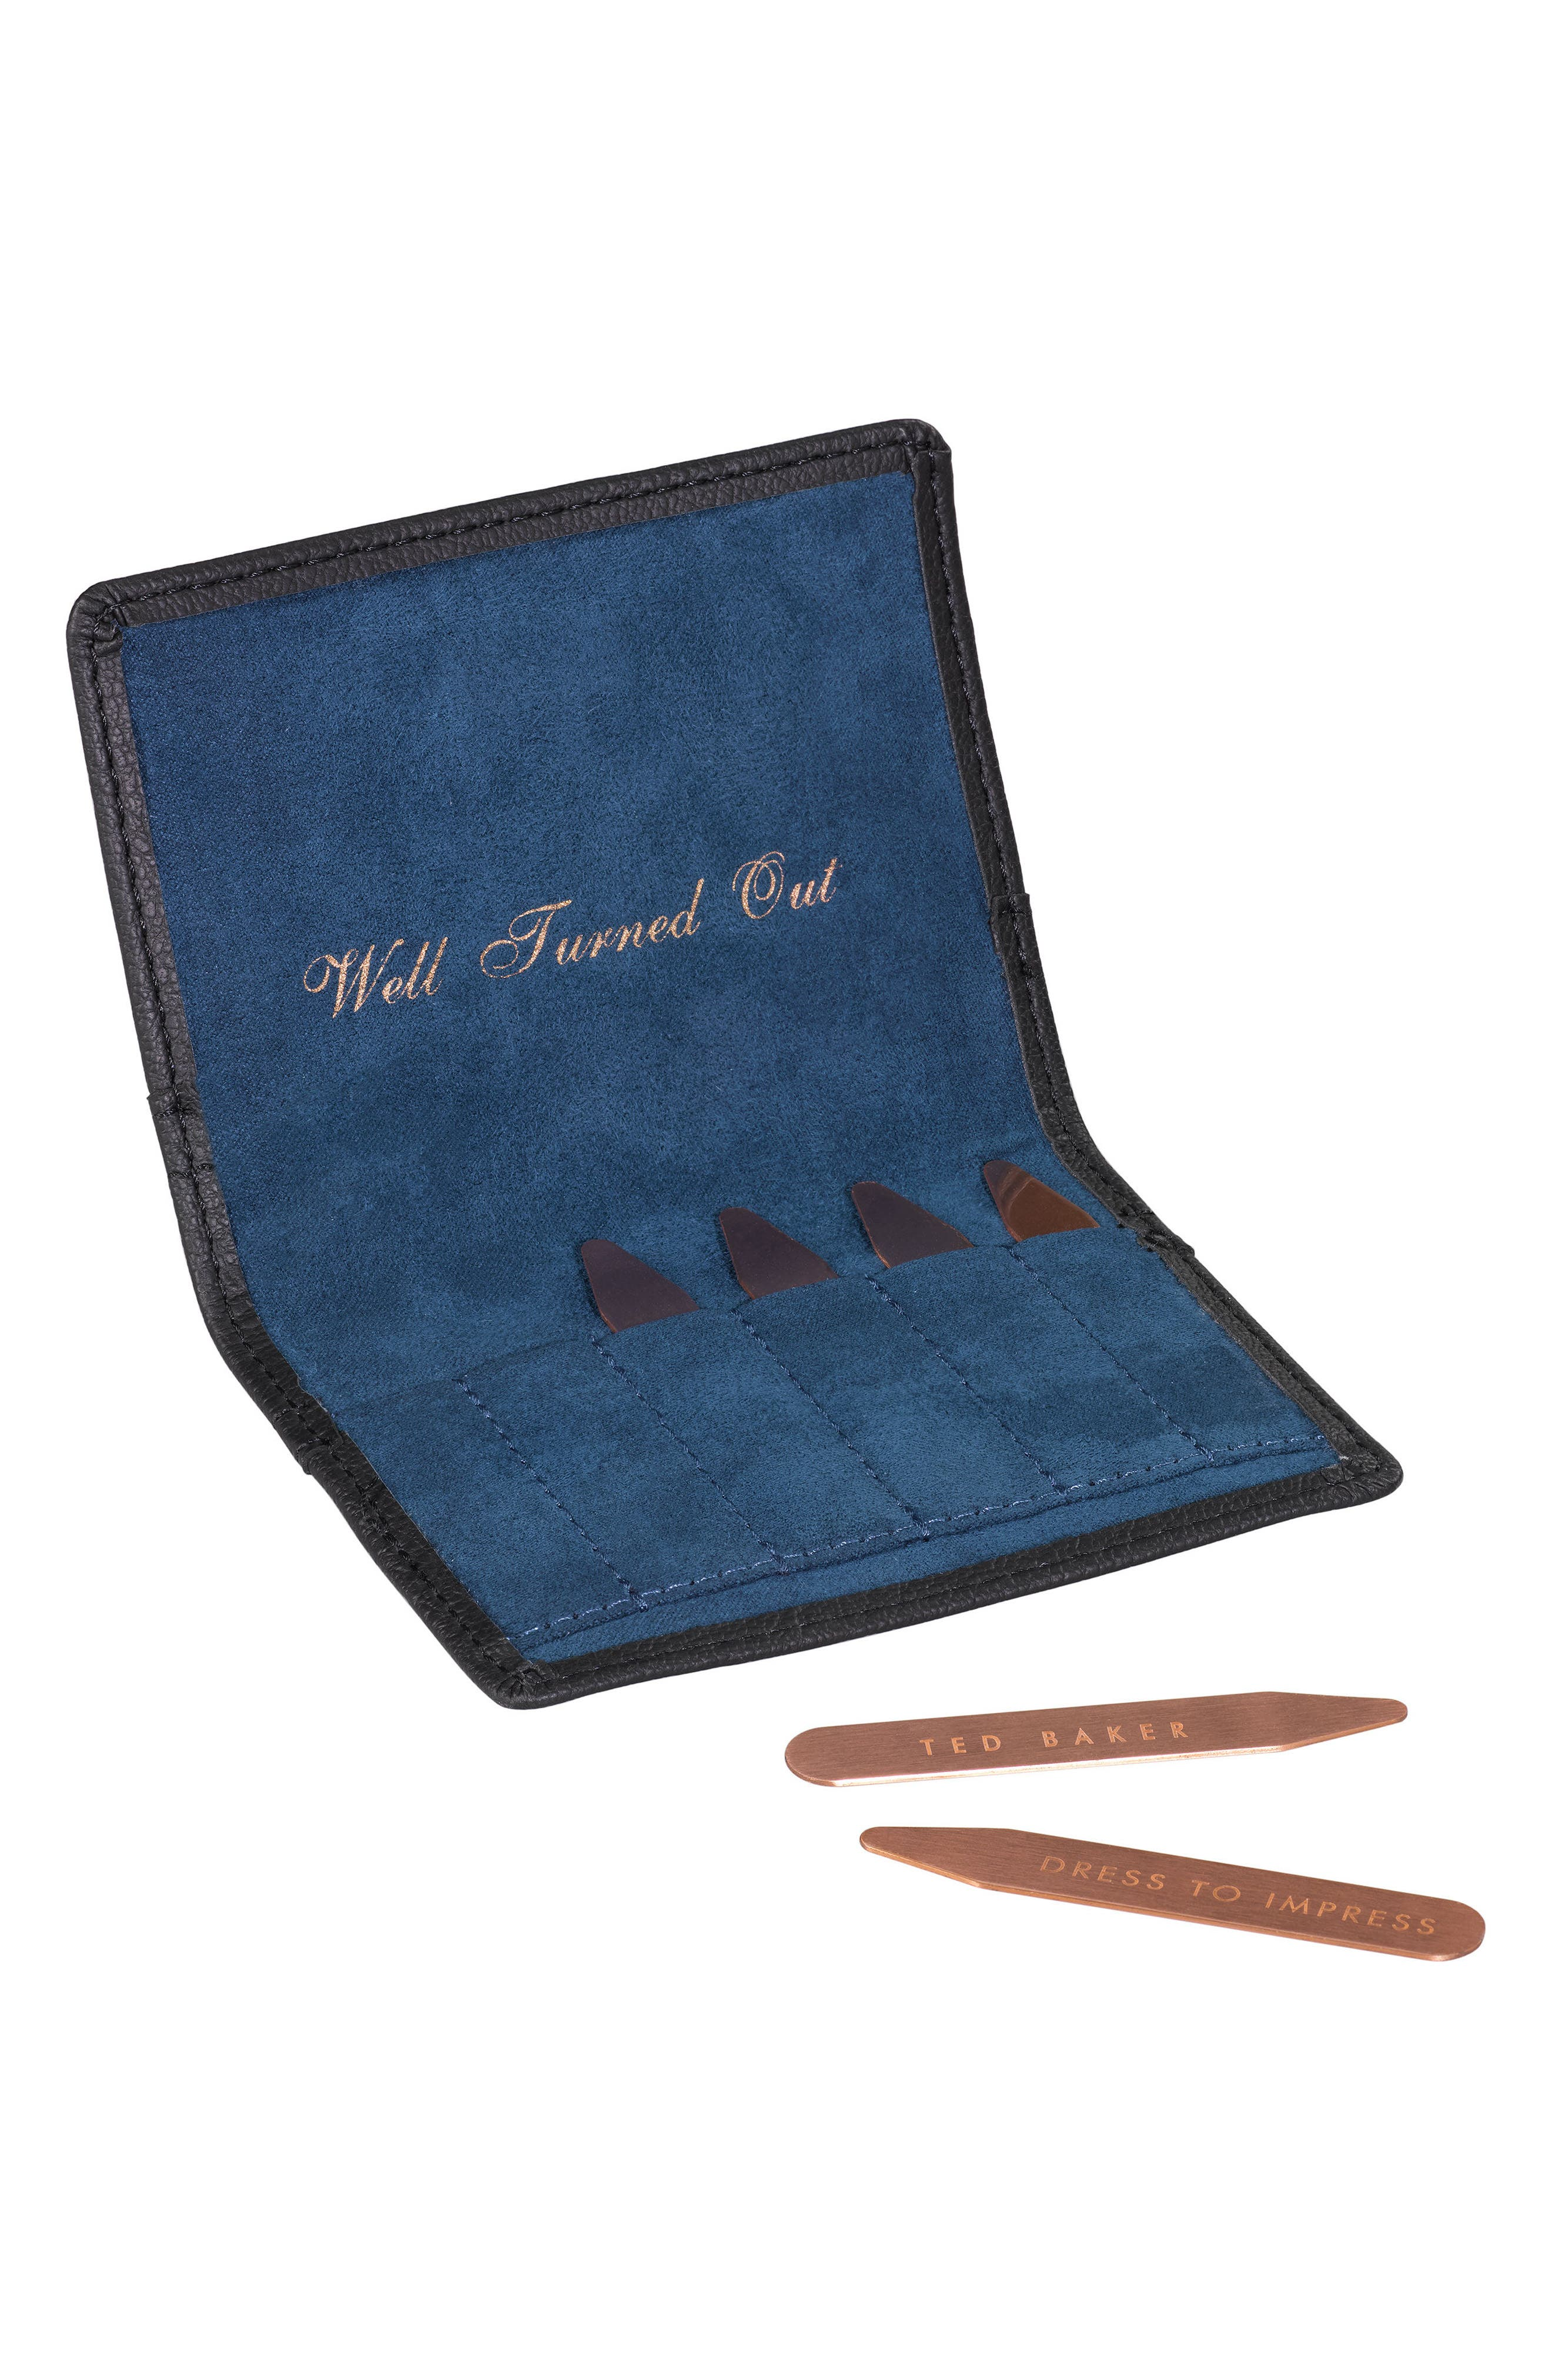 Ted Baker London Set of 6 Collar Stays in Brogued Pouch,                             Alternate thumbnail 2, color,                             001